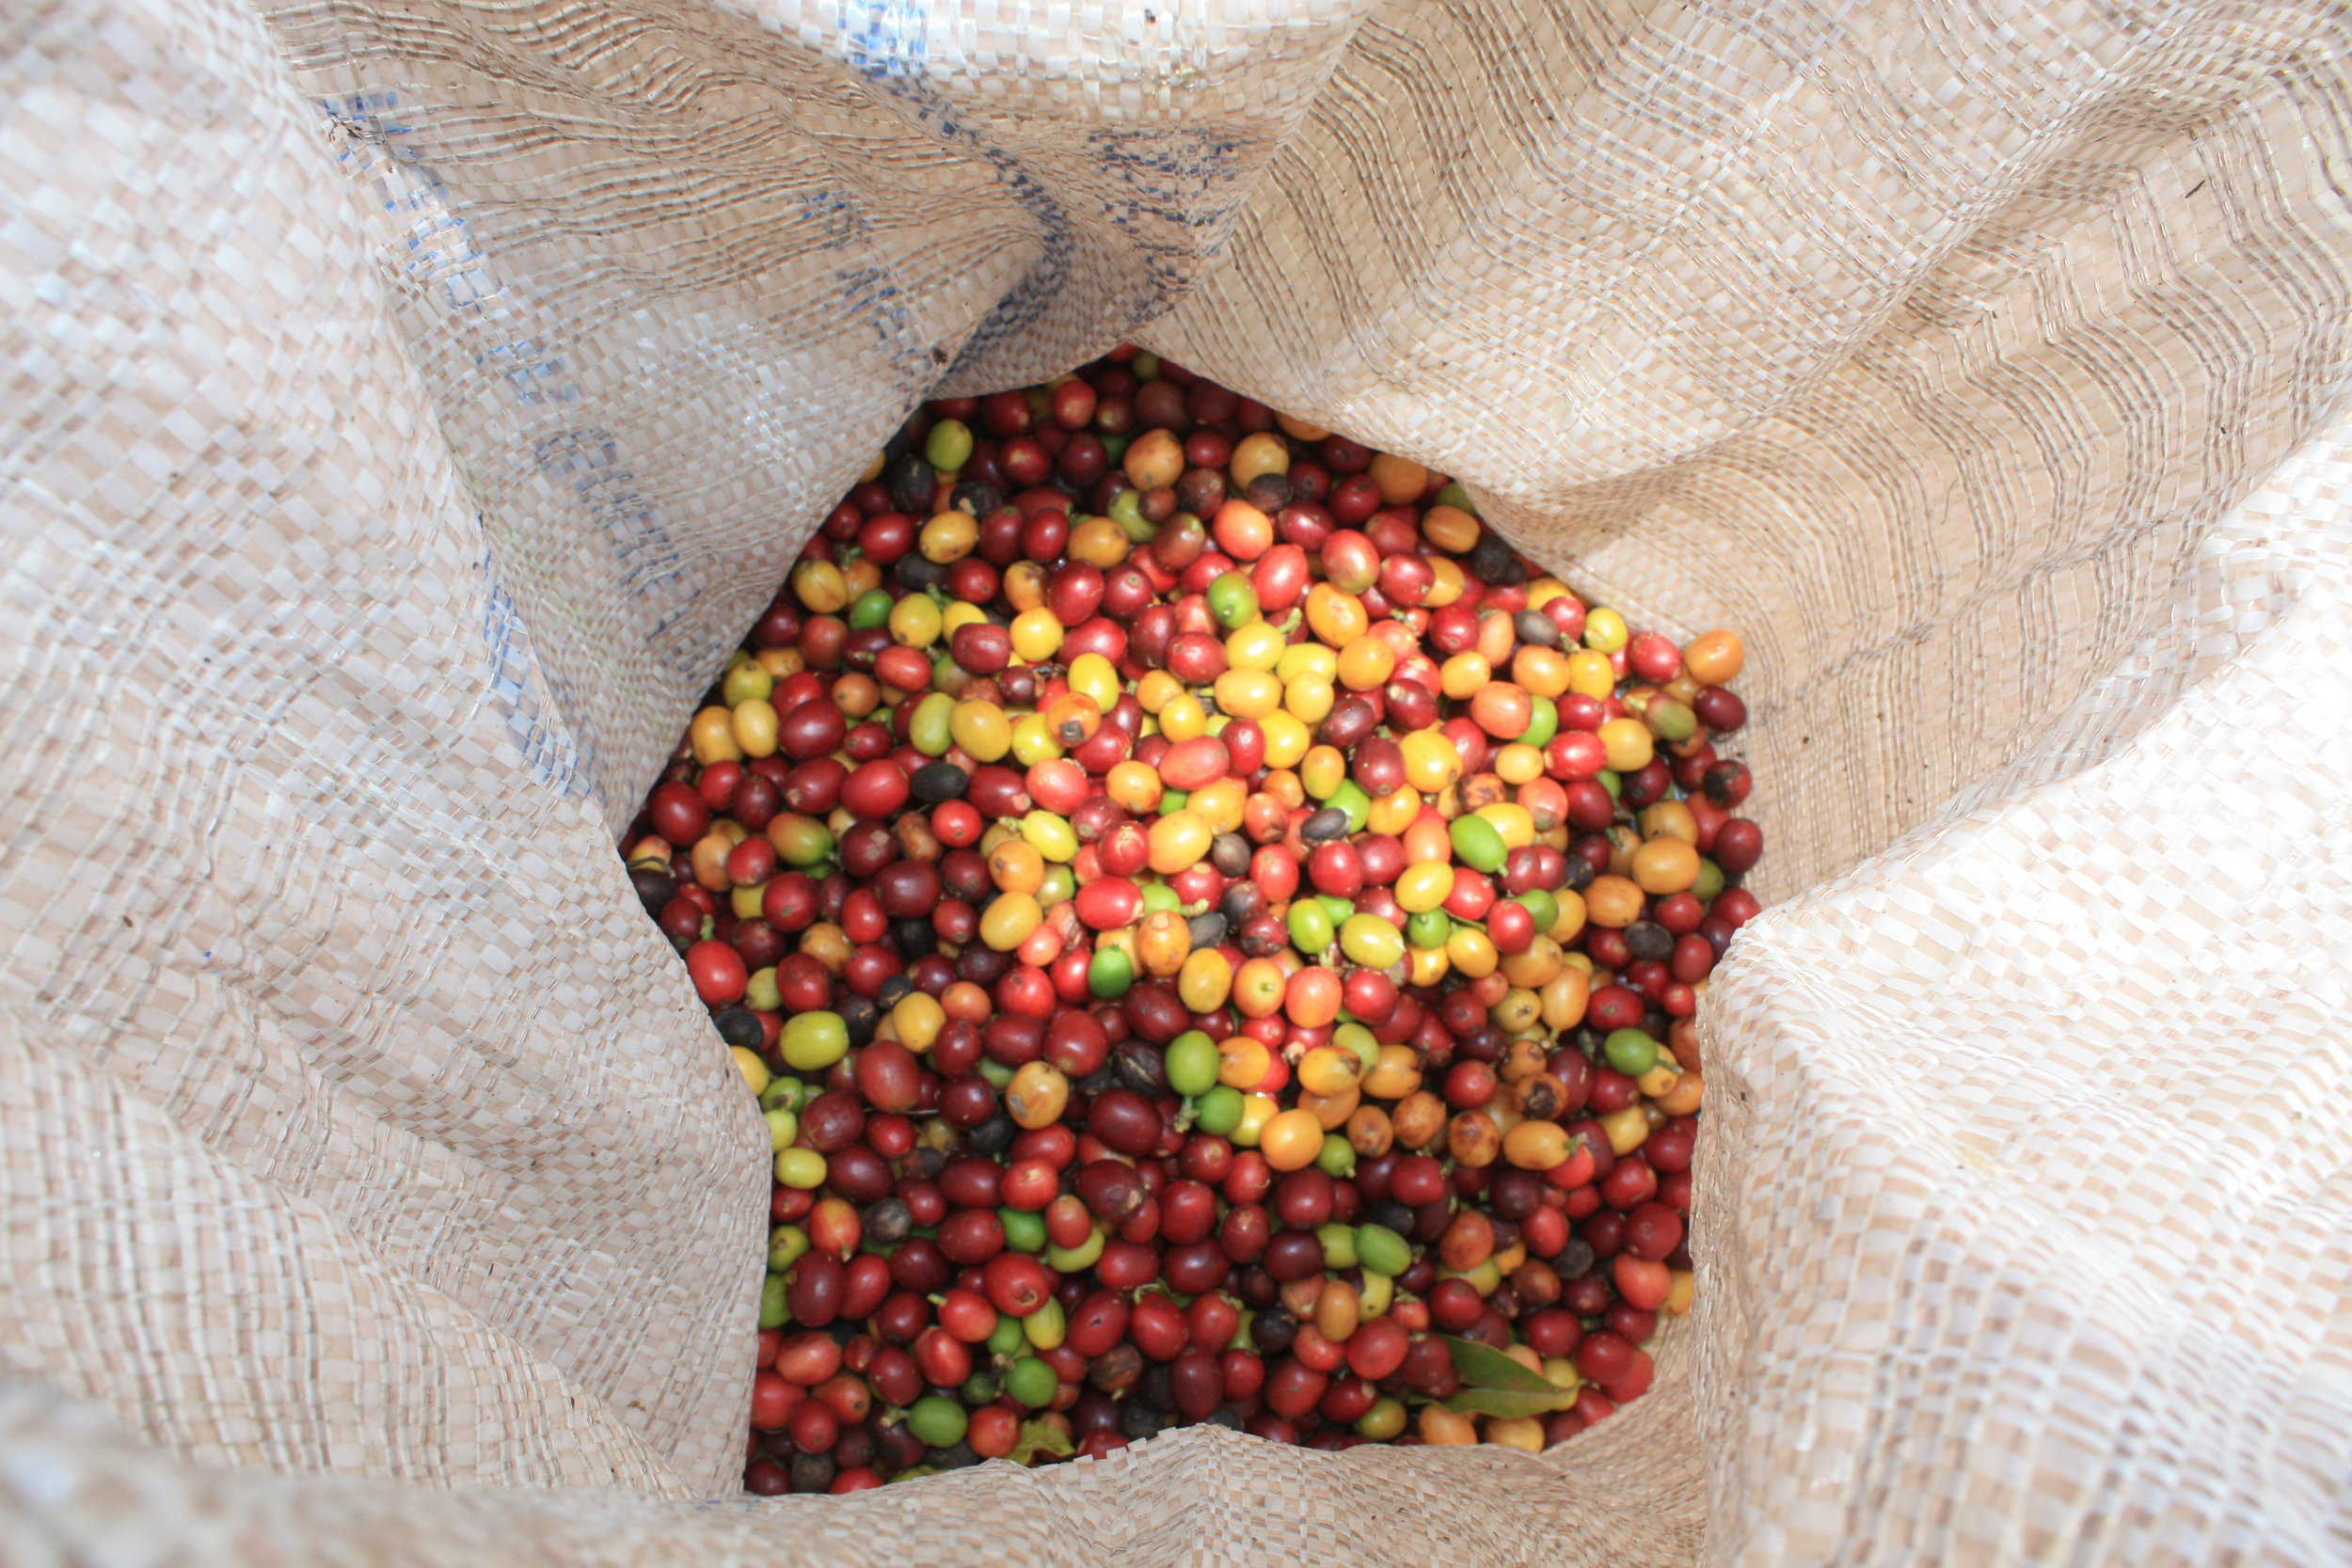 Colombia Manizales Coffee.jpg